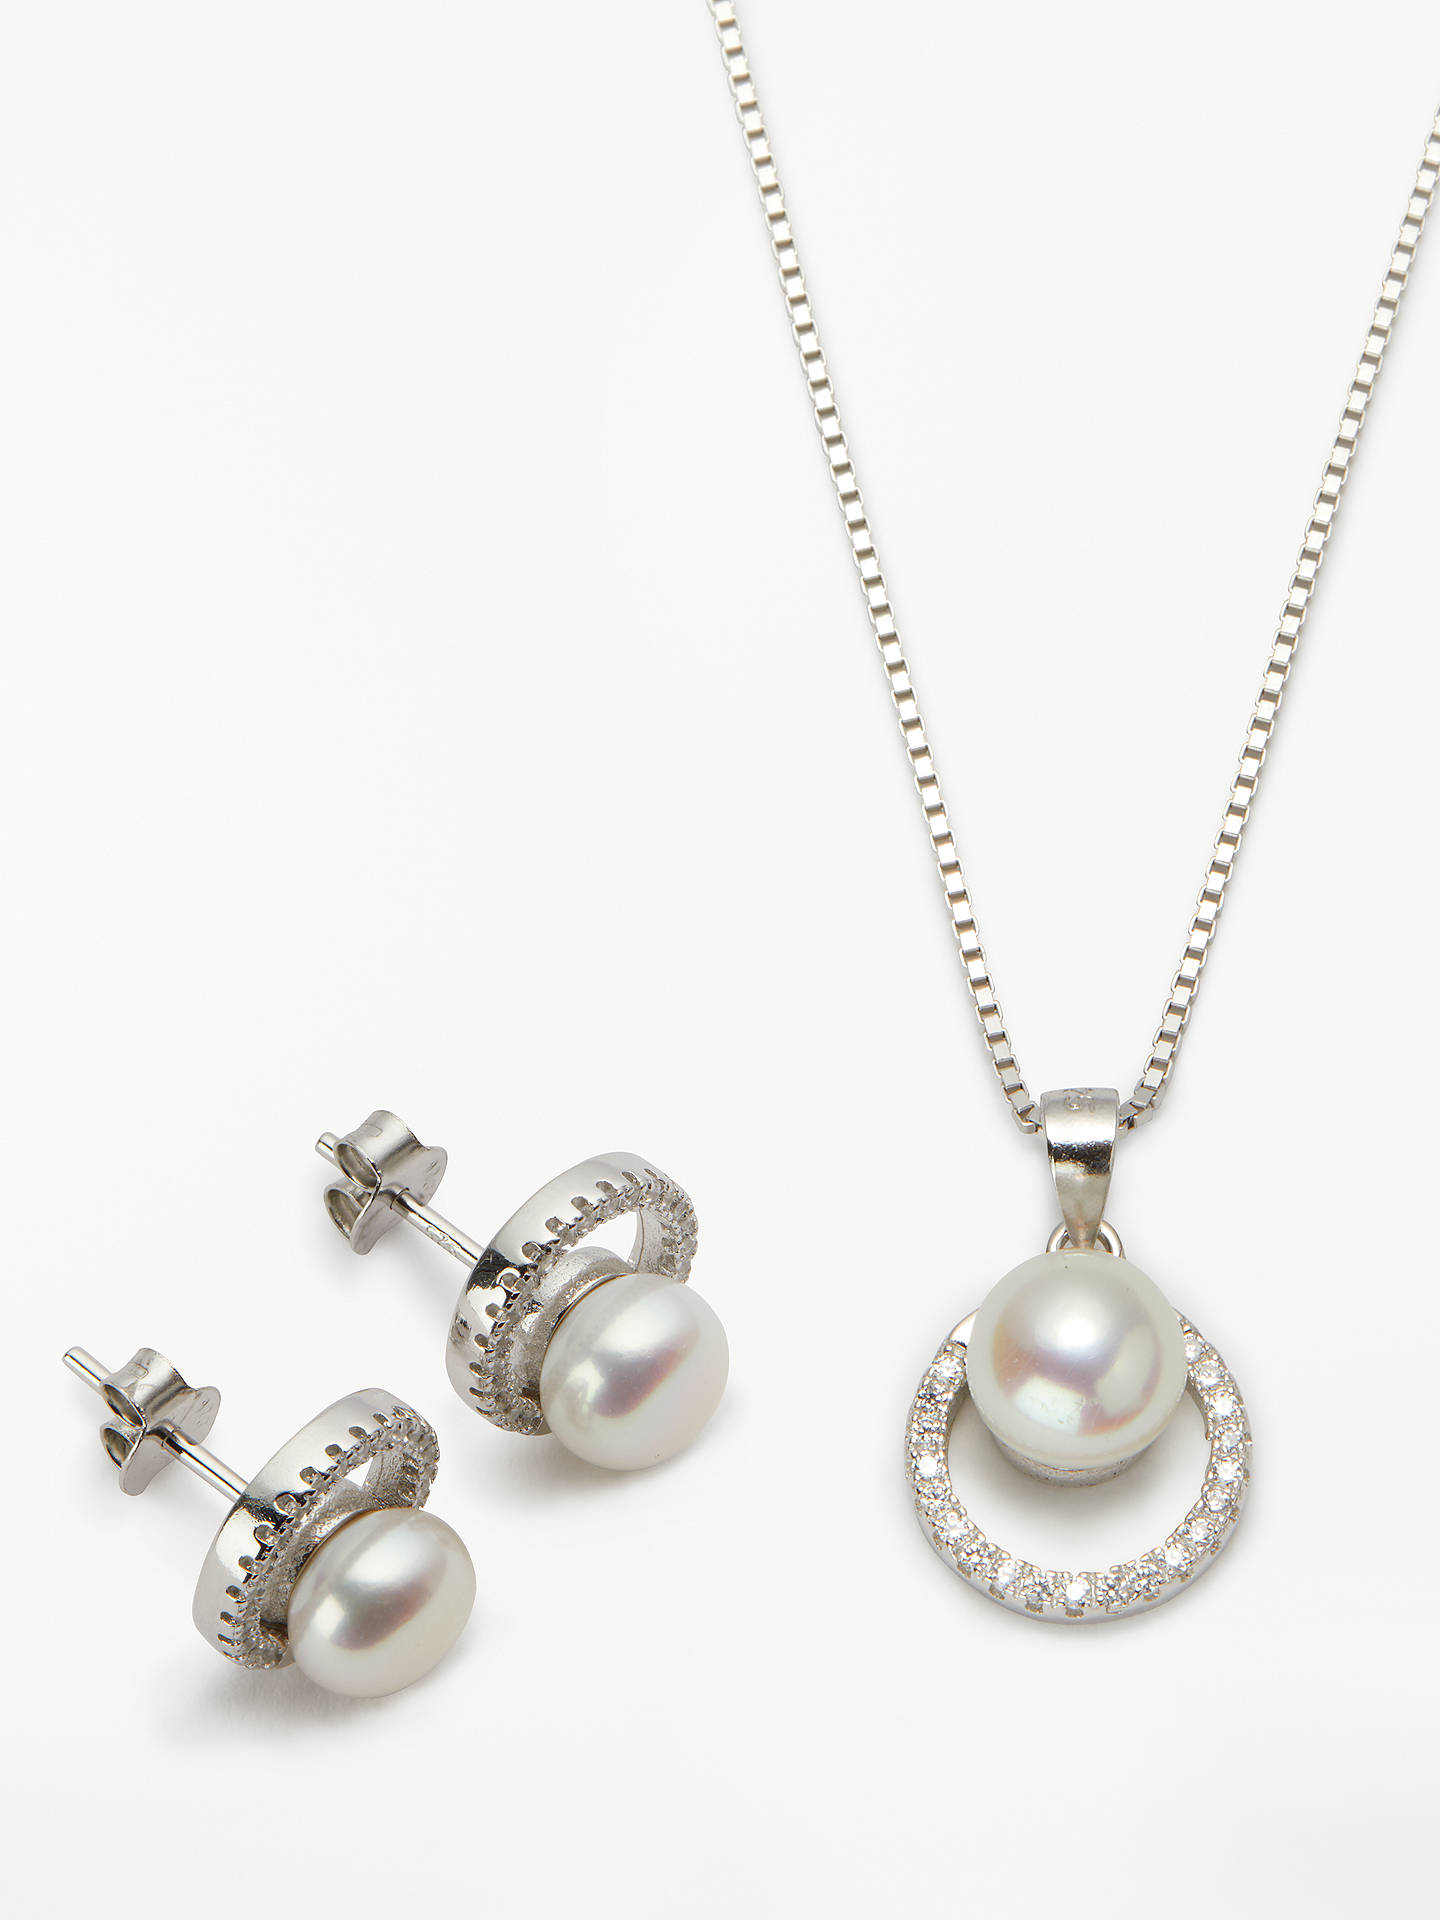 10f3c1dc5 Buy Lido Crystal and Freshwater Pearl Round Stud Earrings and Pendant  Necklace Jewellery Set, Silver ...